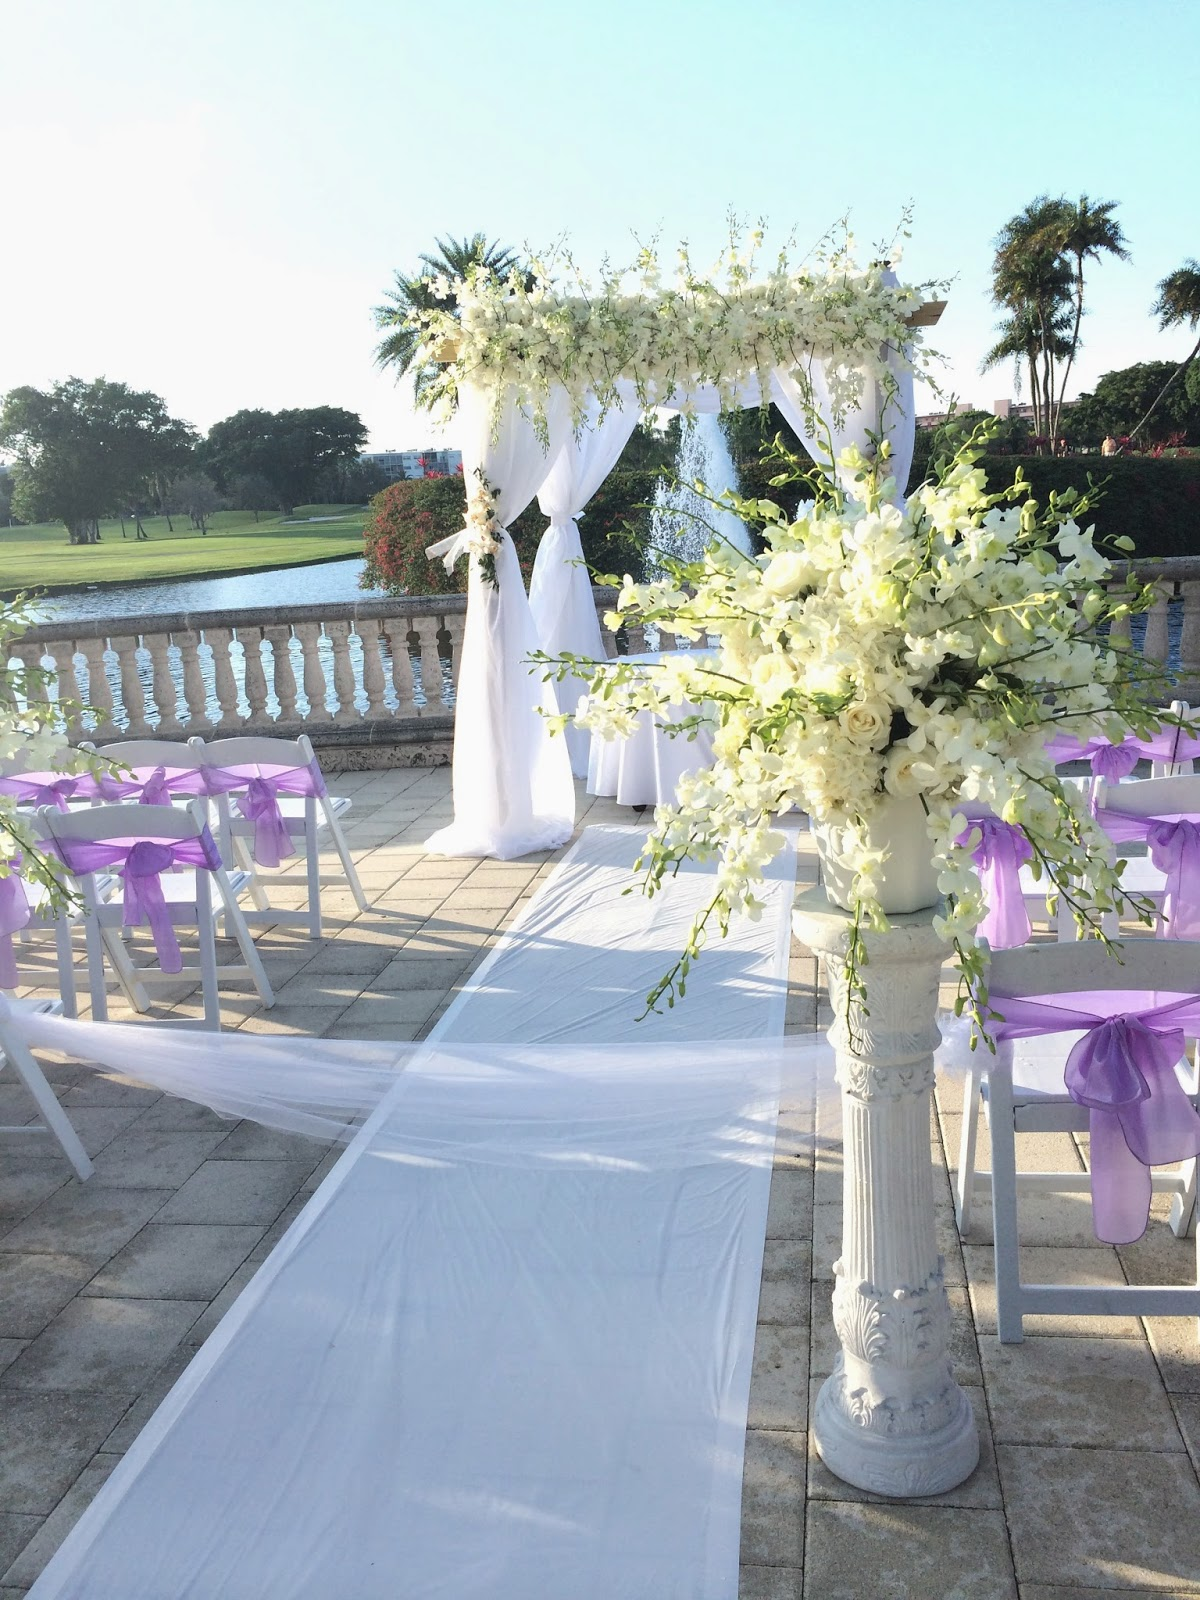 Wedding ceremony gazebo with flowers and white drape